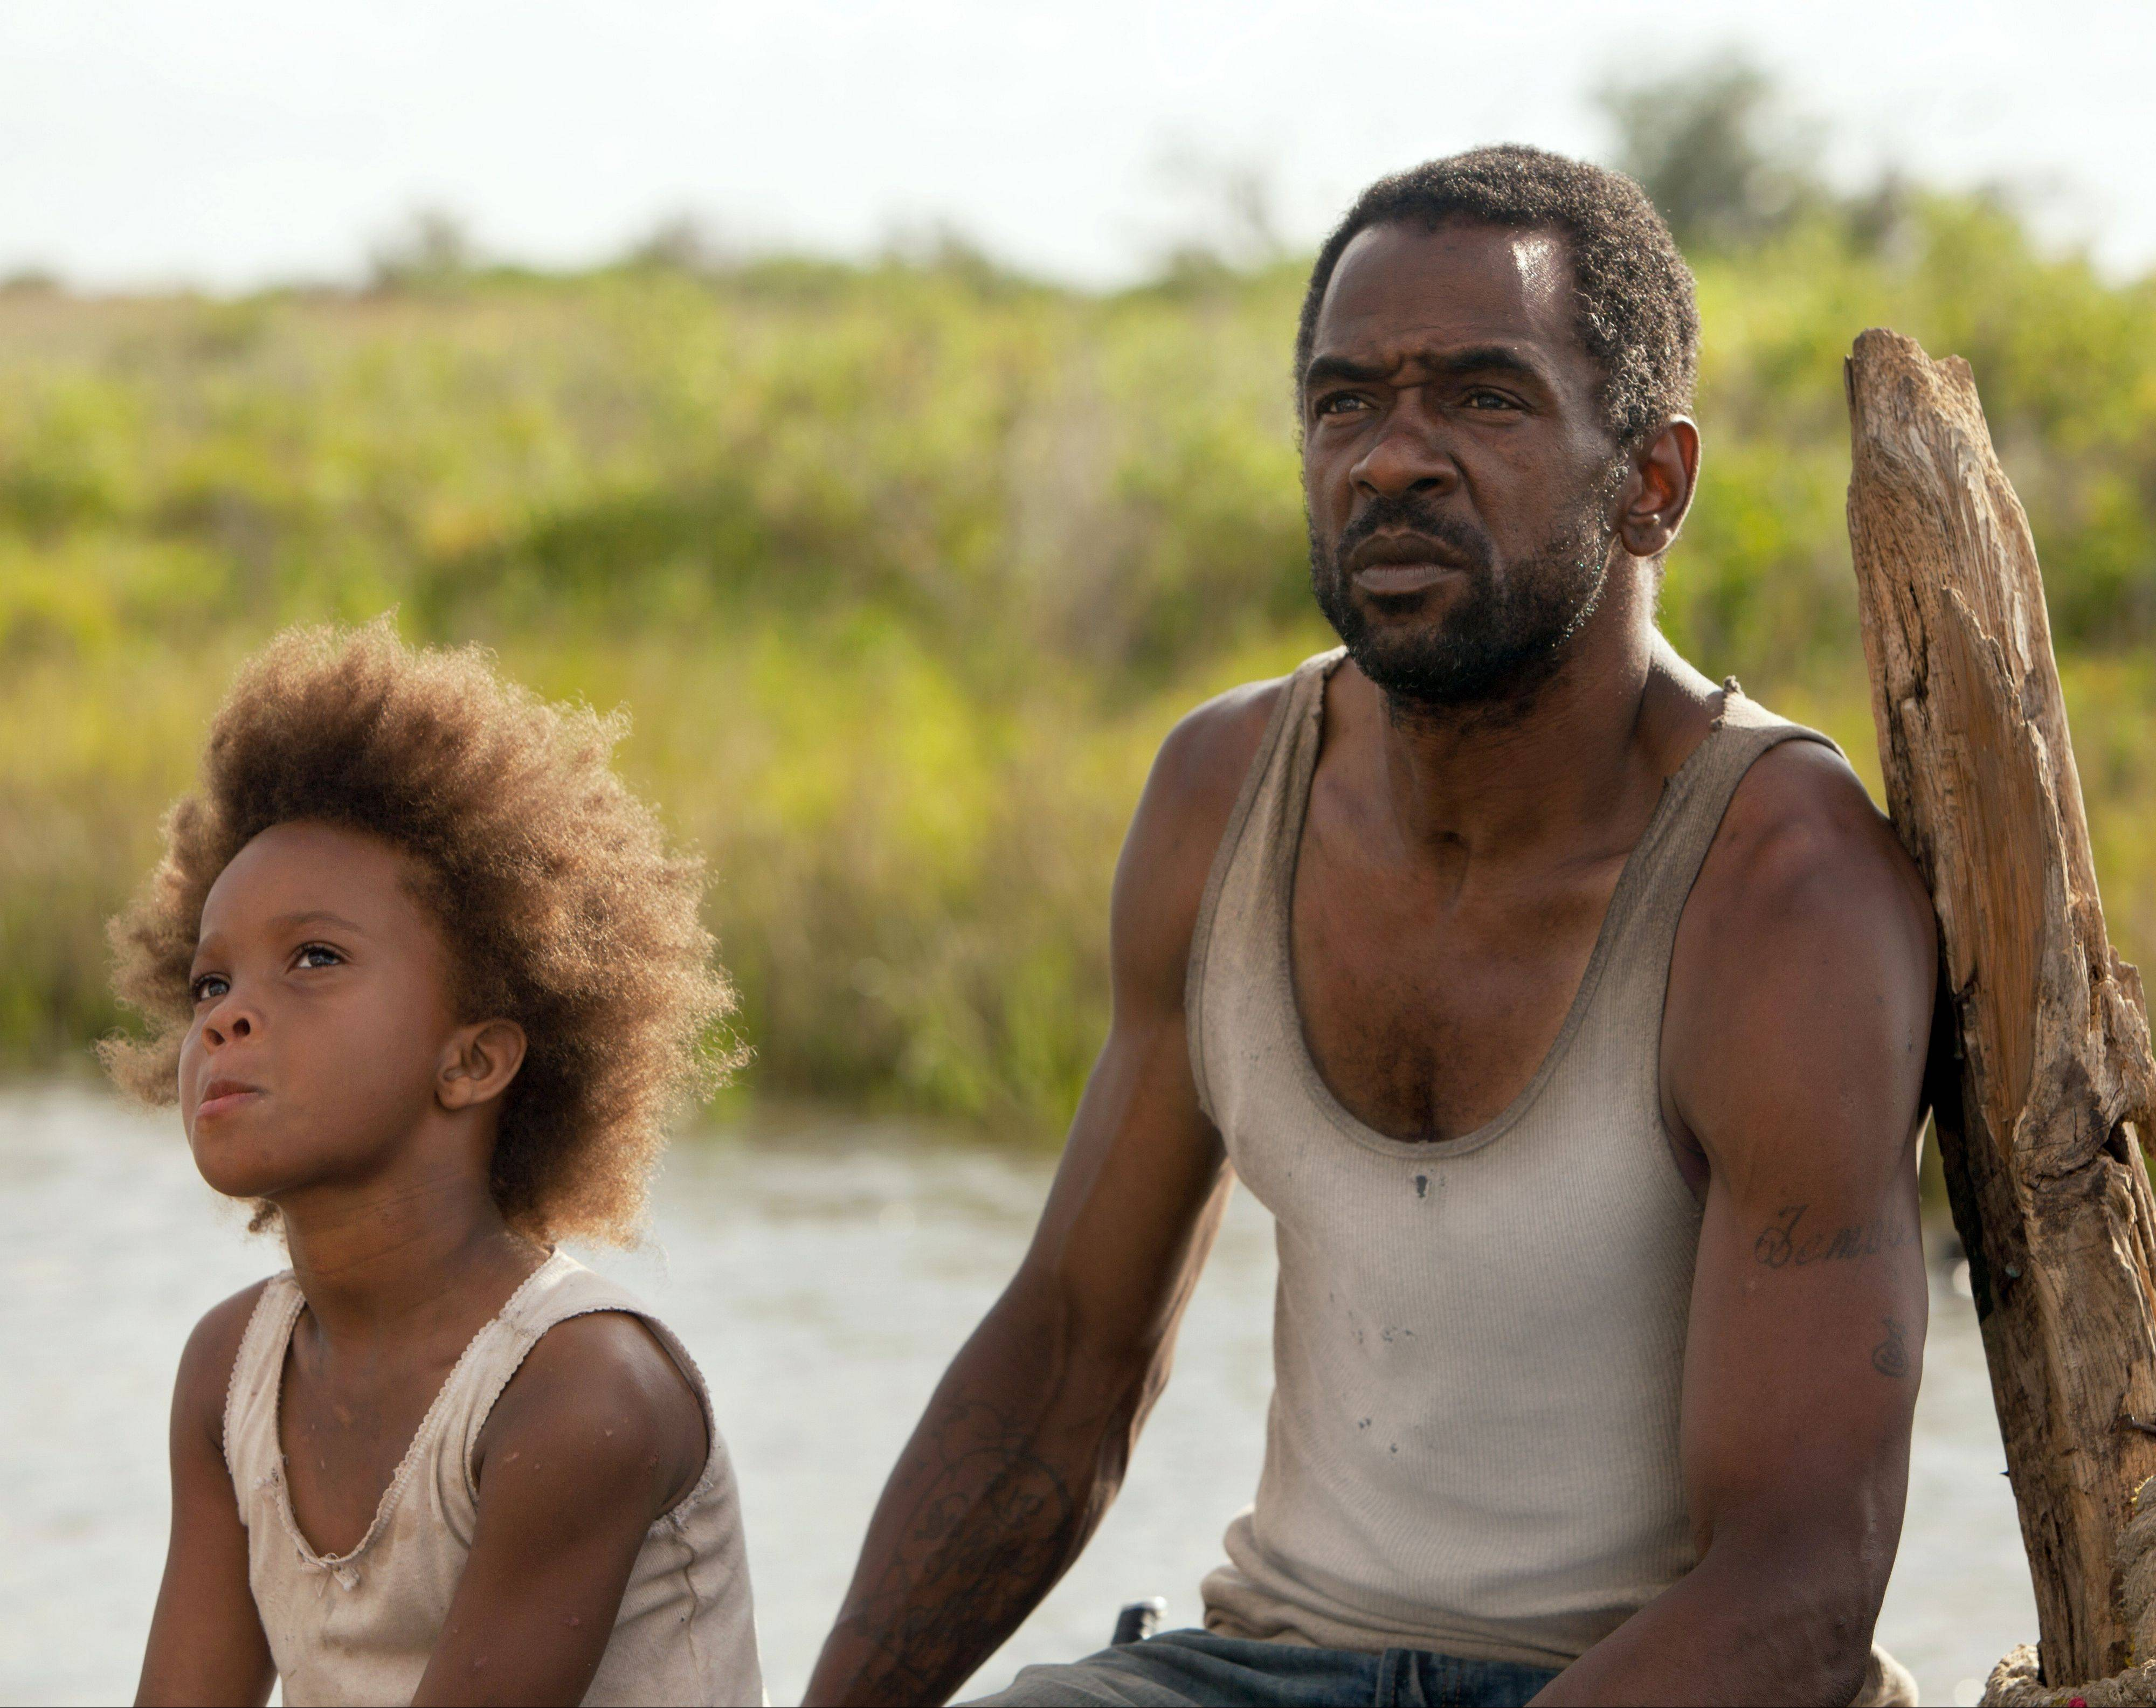 "Wink (Dwight Henry) and his young daughter Hushpuppy (Quvenzhane Wallis) eke out a meager existence in post-Katrina Louisiana in Benh Zeitlin's impressive first feature ""Beasts of the Southern Wild."""